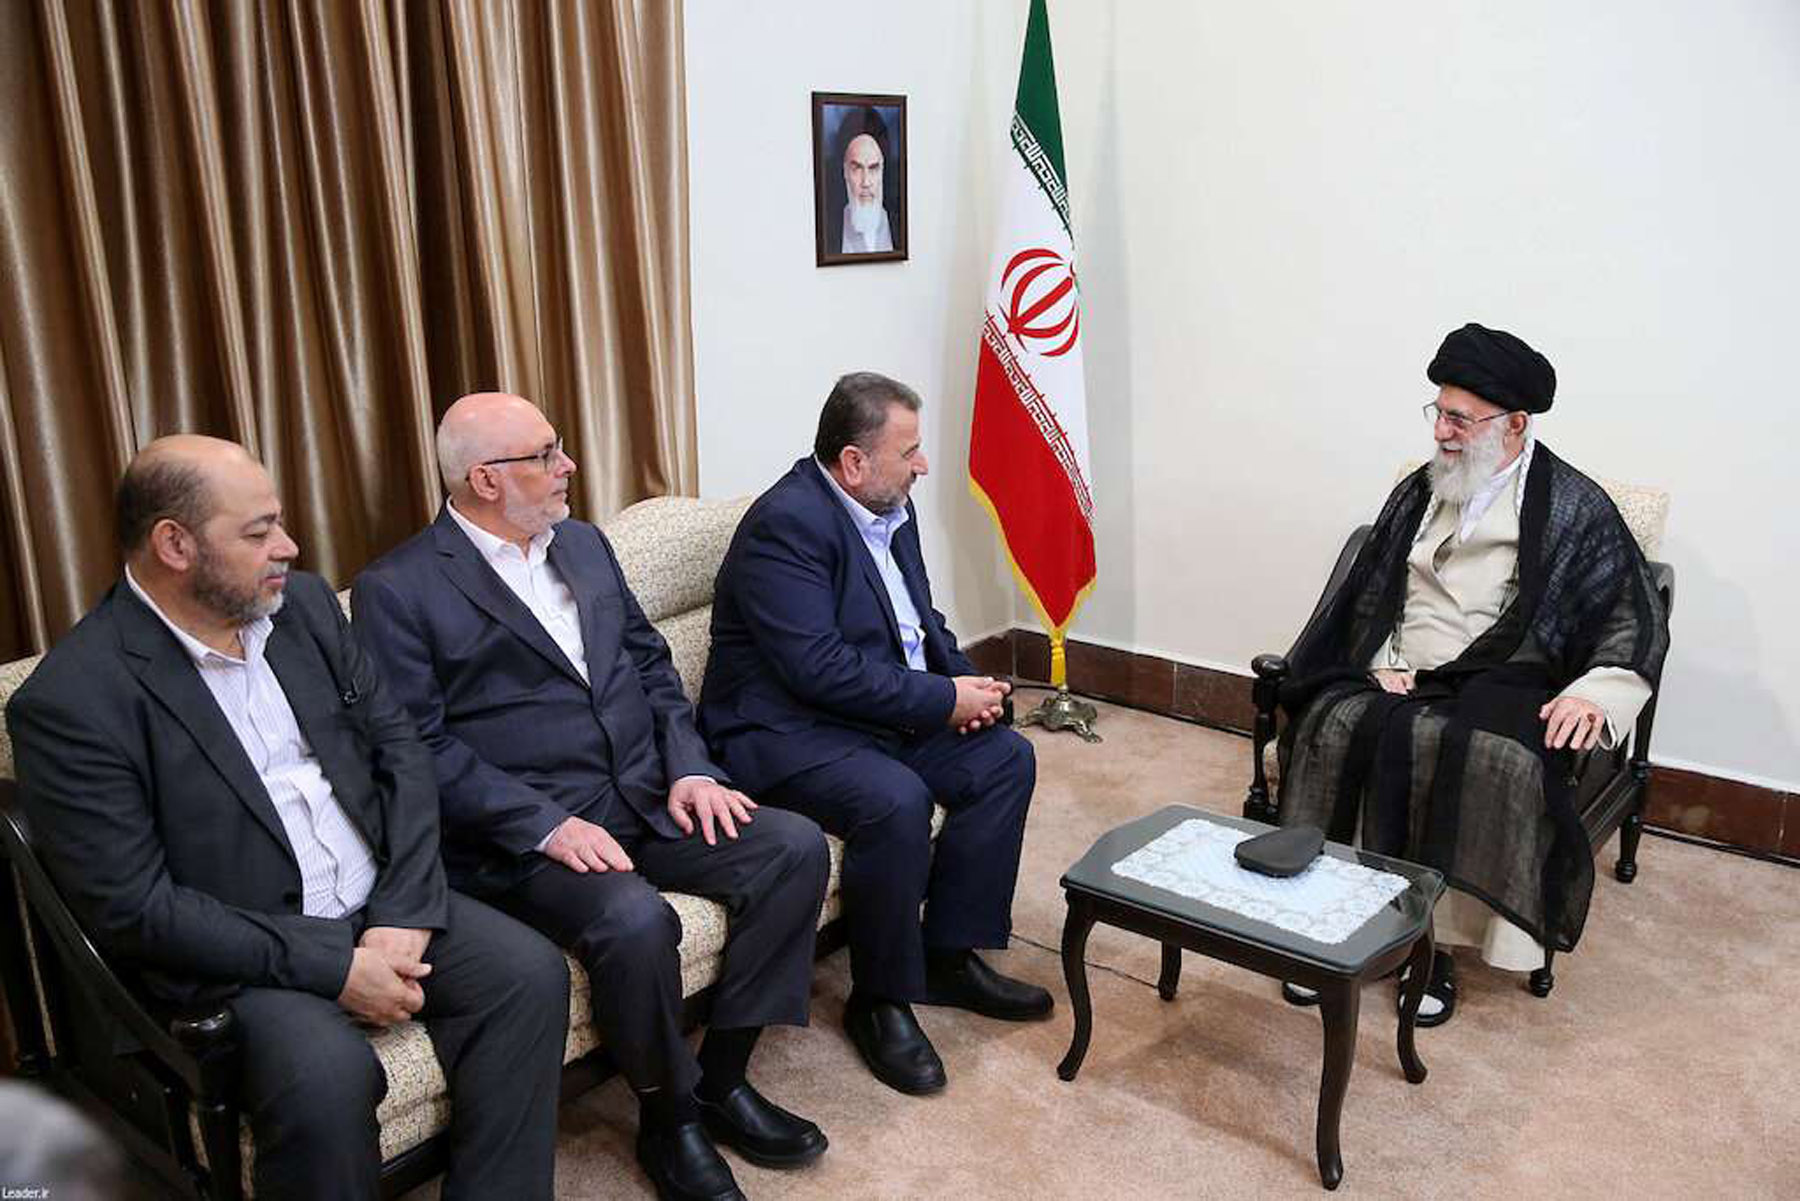 Rising concerns. Iran's Supreme Leader Ayatollah Ali Khamenei (R) meets with Hamas Politburo Deputy Chairman Saleh Arouri (2nd R) and other members of a Hamas delegation in Tehran, July 22.  (Reuters)